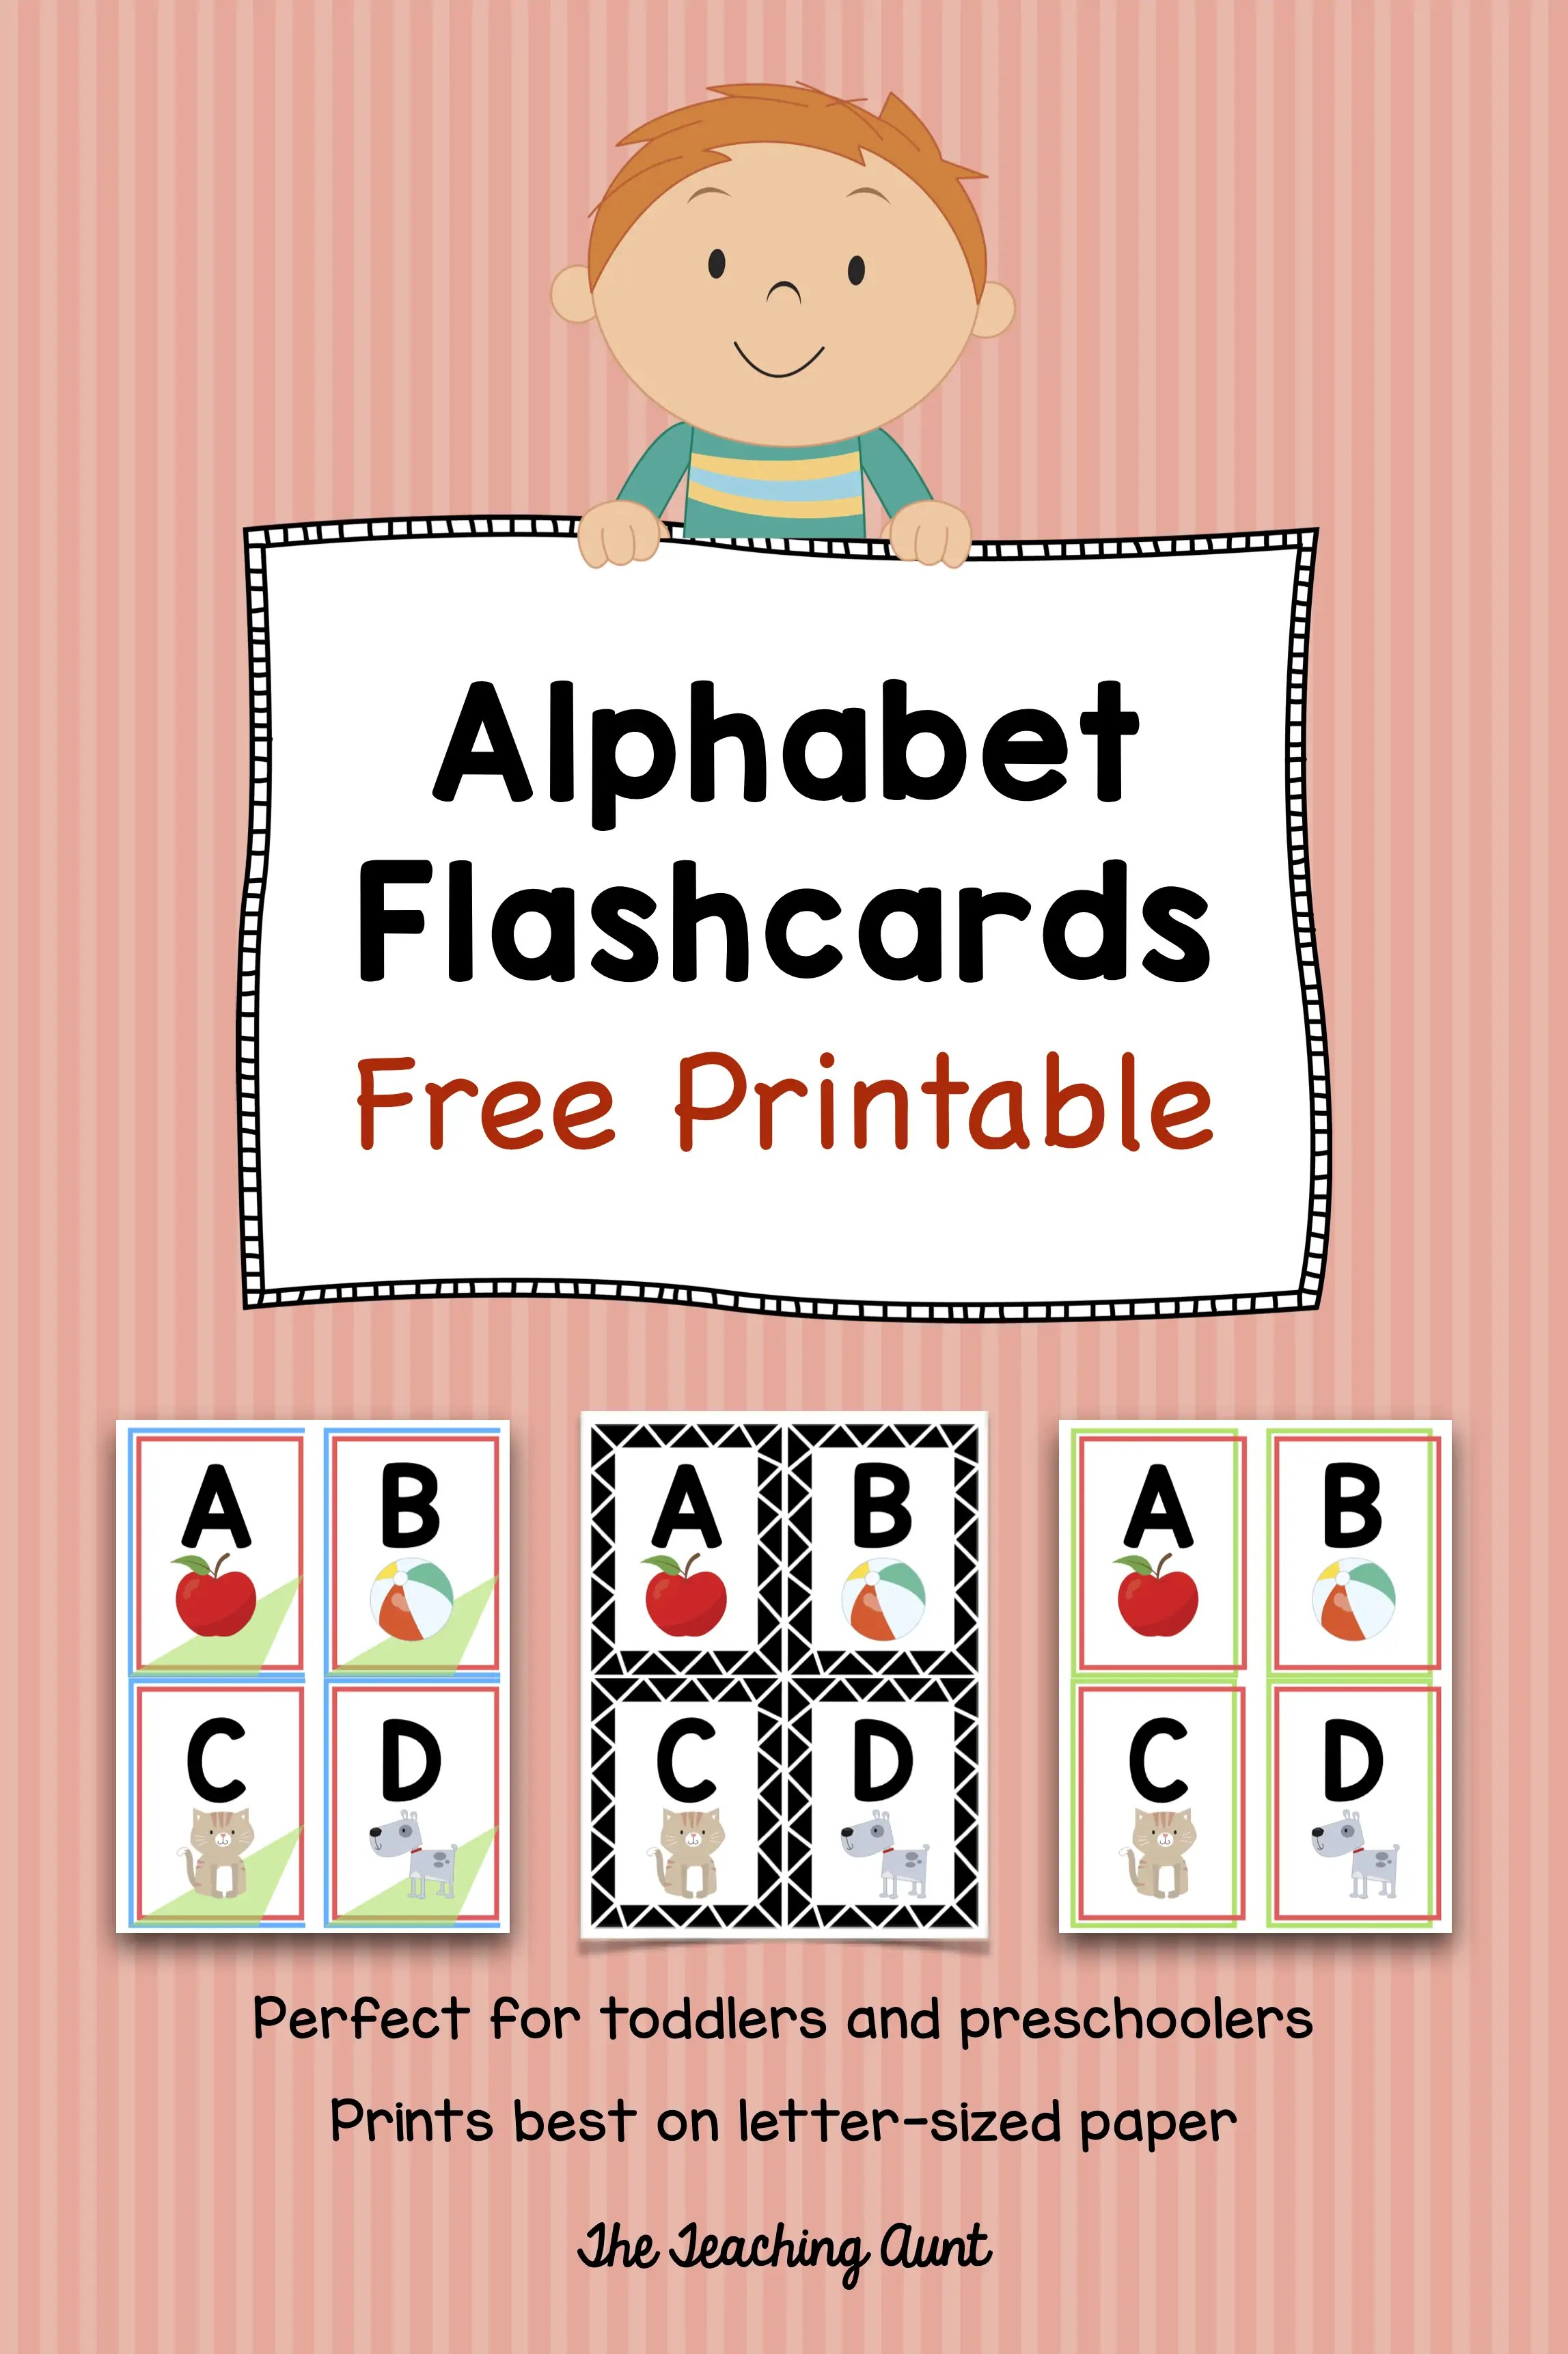 photograph relating to Letter Flashcards Printable named Alphabet Flashcards Totally free Printable - The Training Aunt